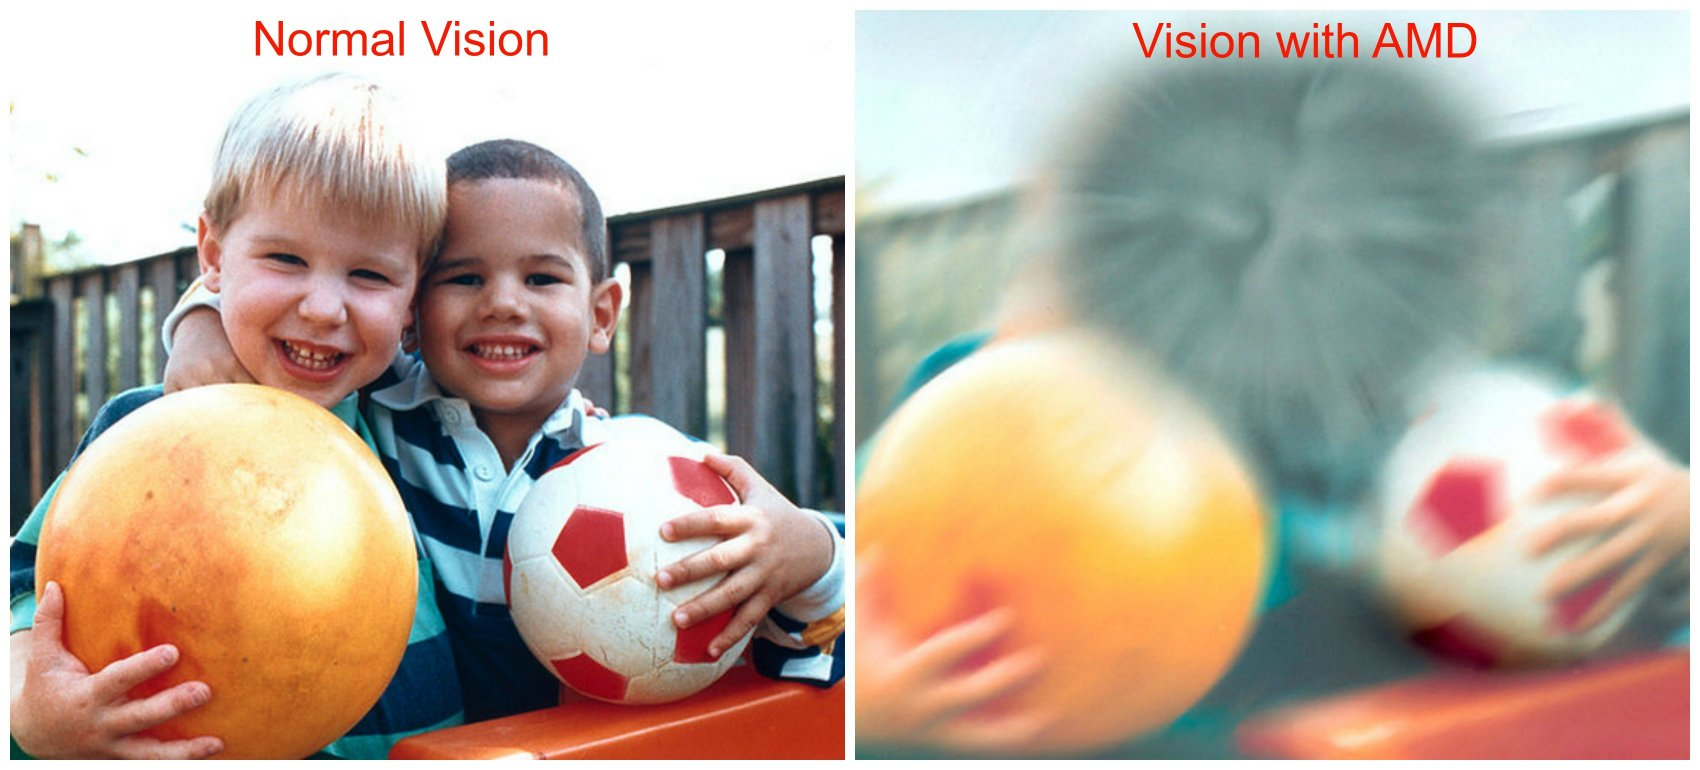 Normal and Age Related Macular Degeneration Vision Google image from http://www.scottsdaleeye.com/wp-content/uploads/2015/03/Macular-Degeneration-Photo.jpg